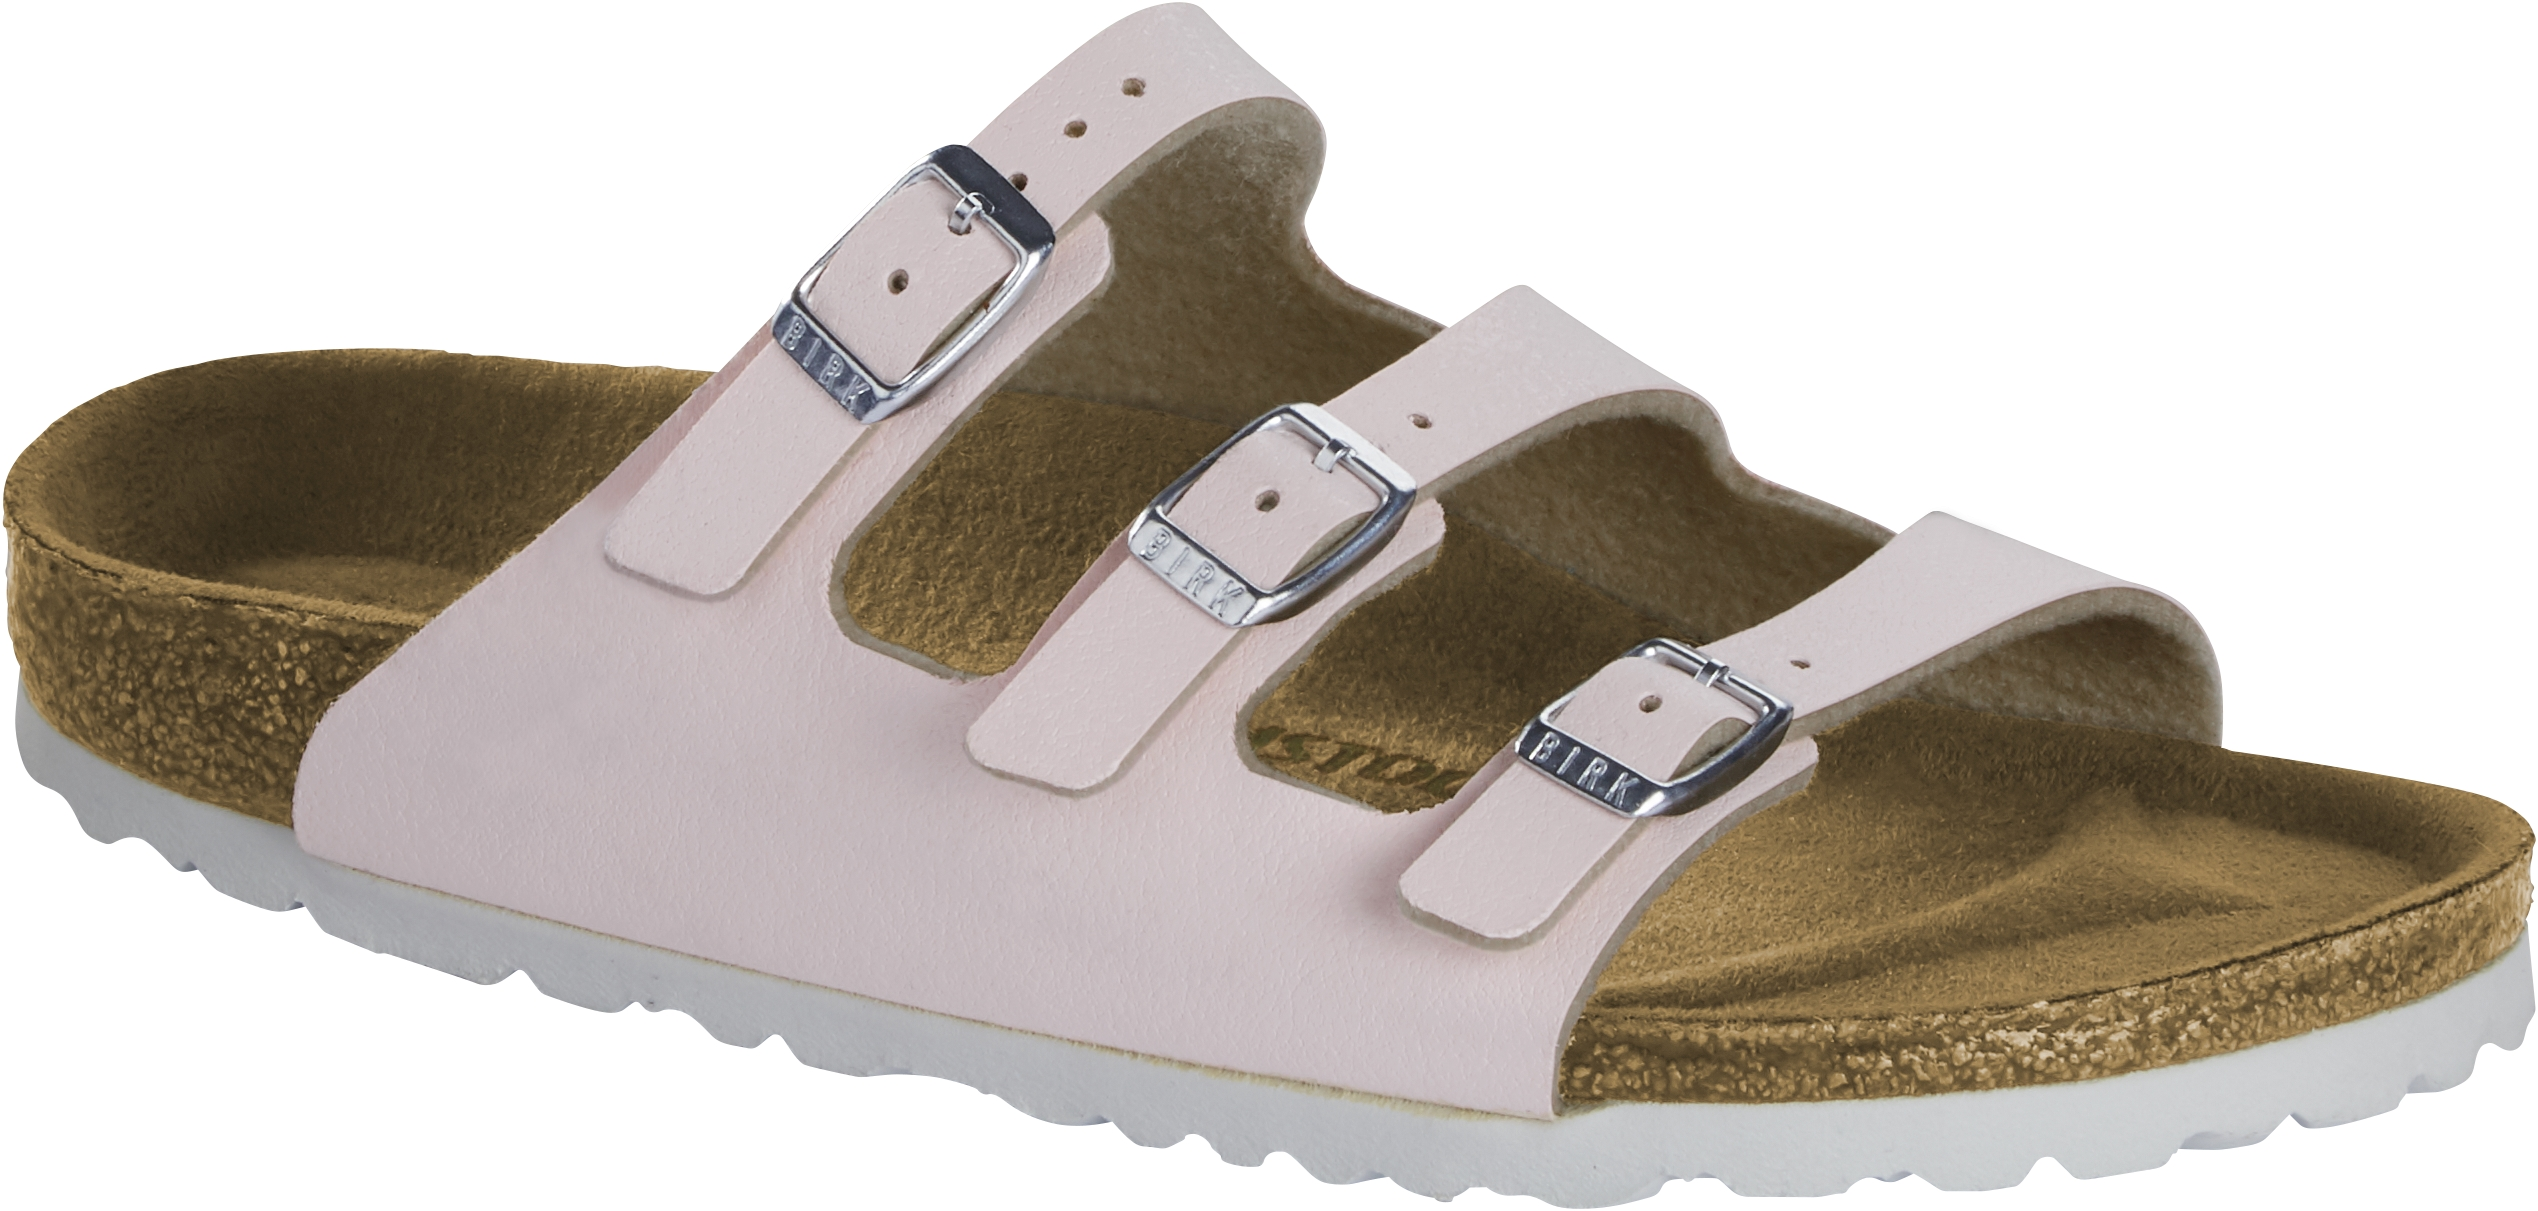 Birkenstock Pantolette Florida brushed rose 1016641